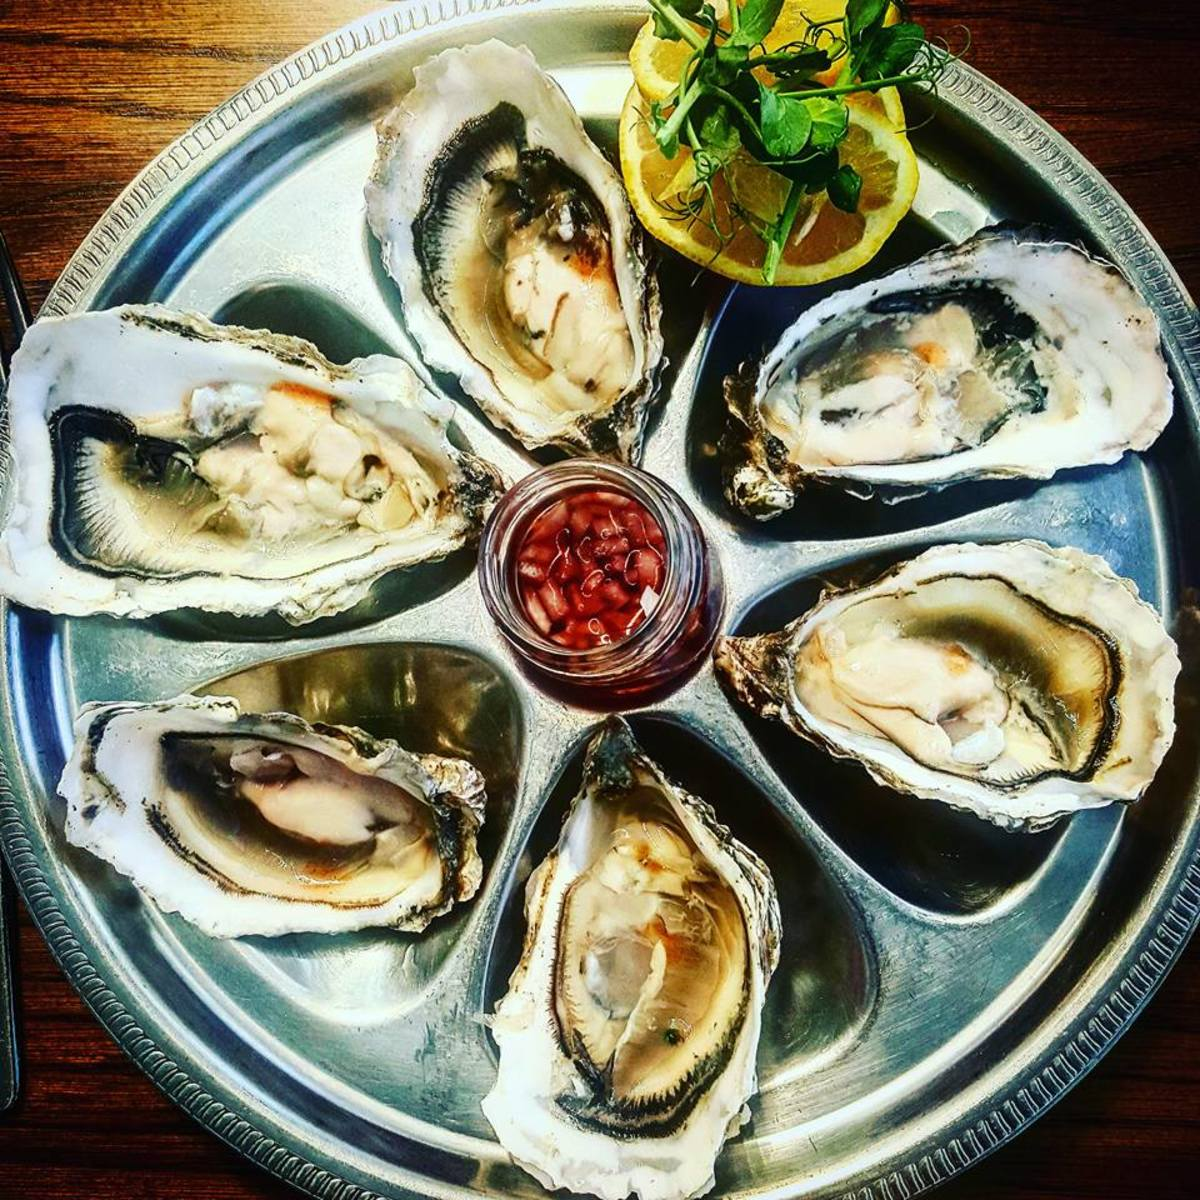 Sampling Galway oysters, some of the best in the world.